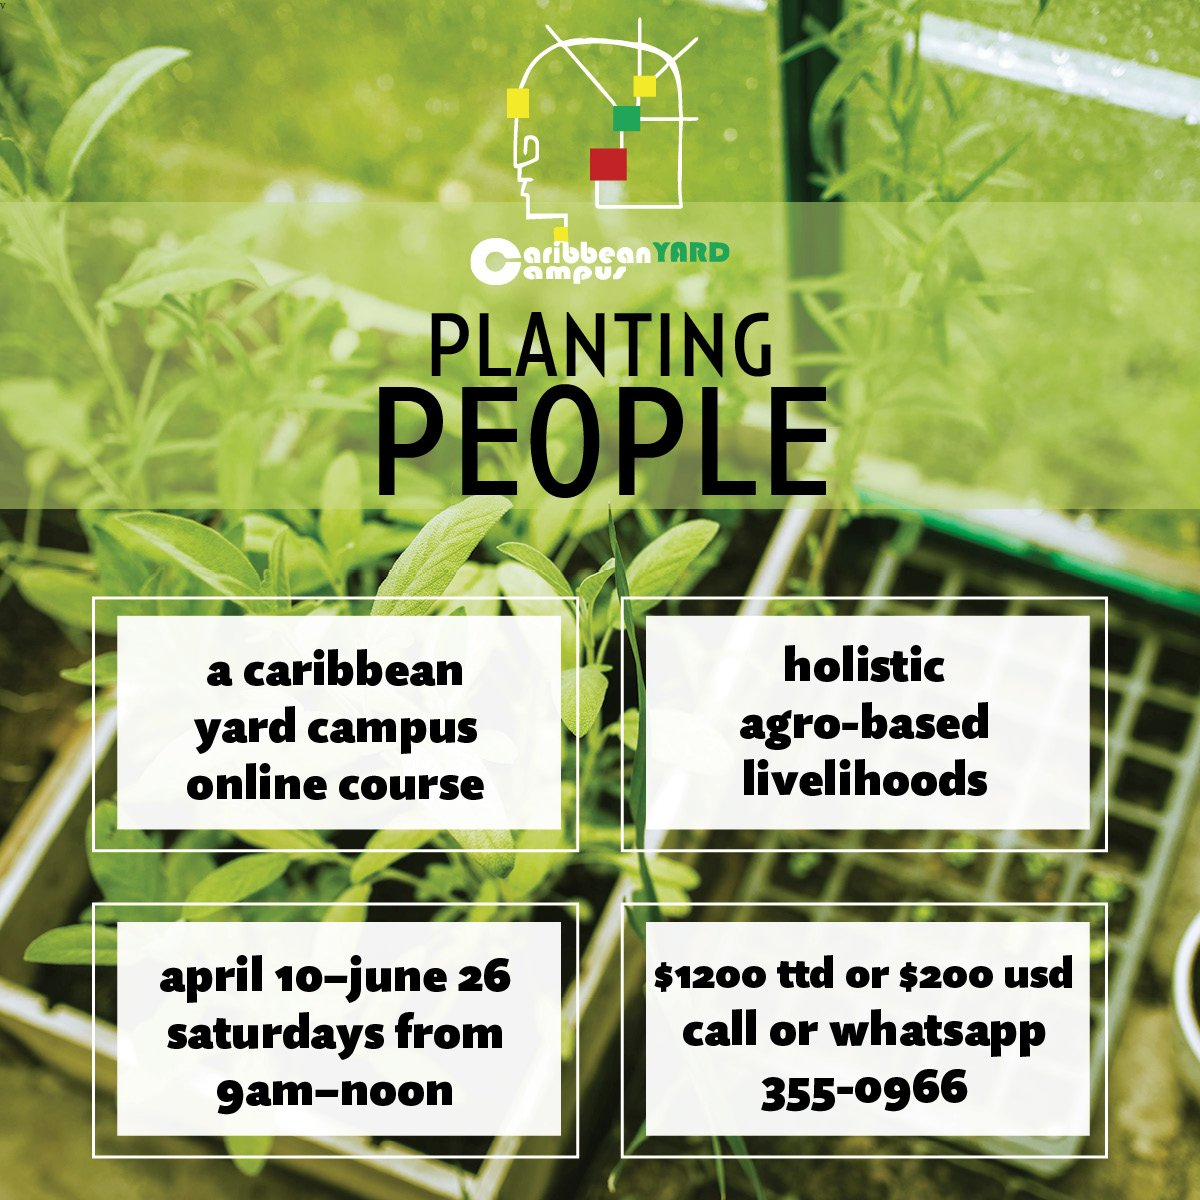 Planting People: Holistic Agro-Based Livelihoods